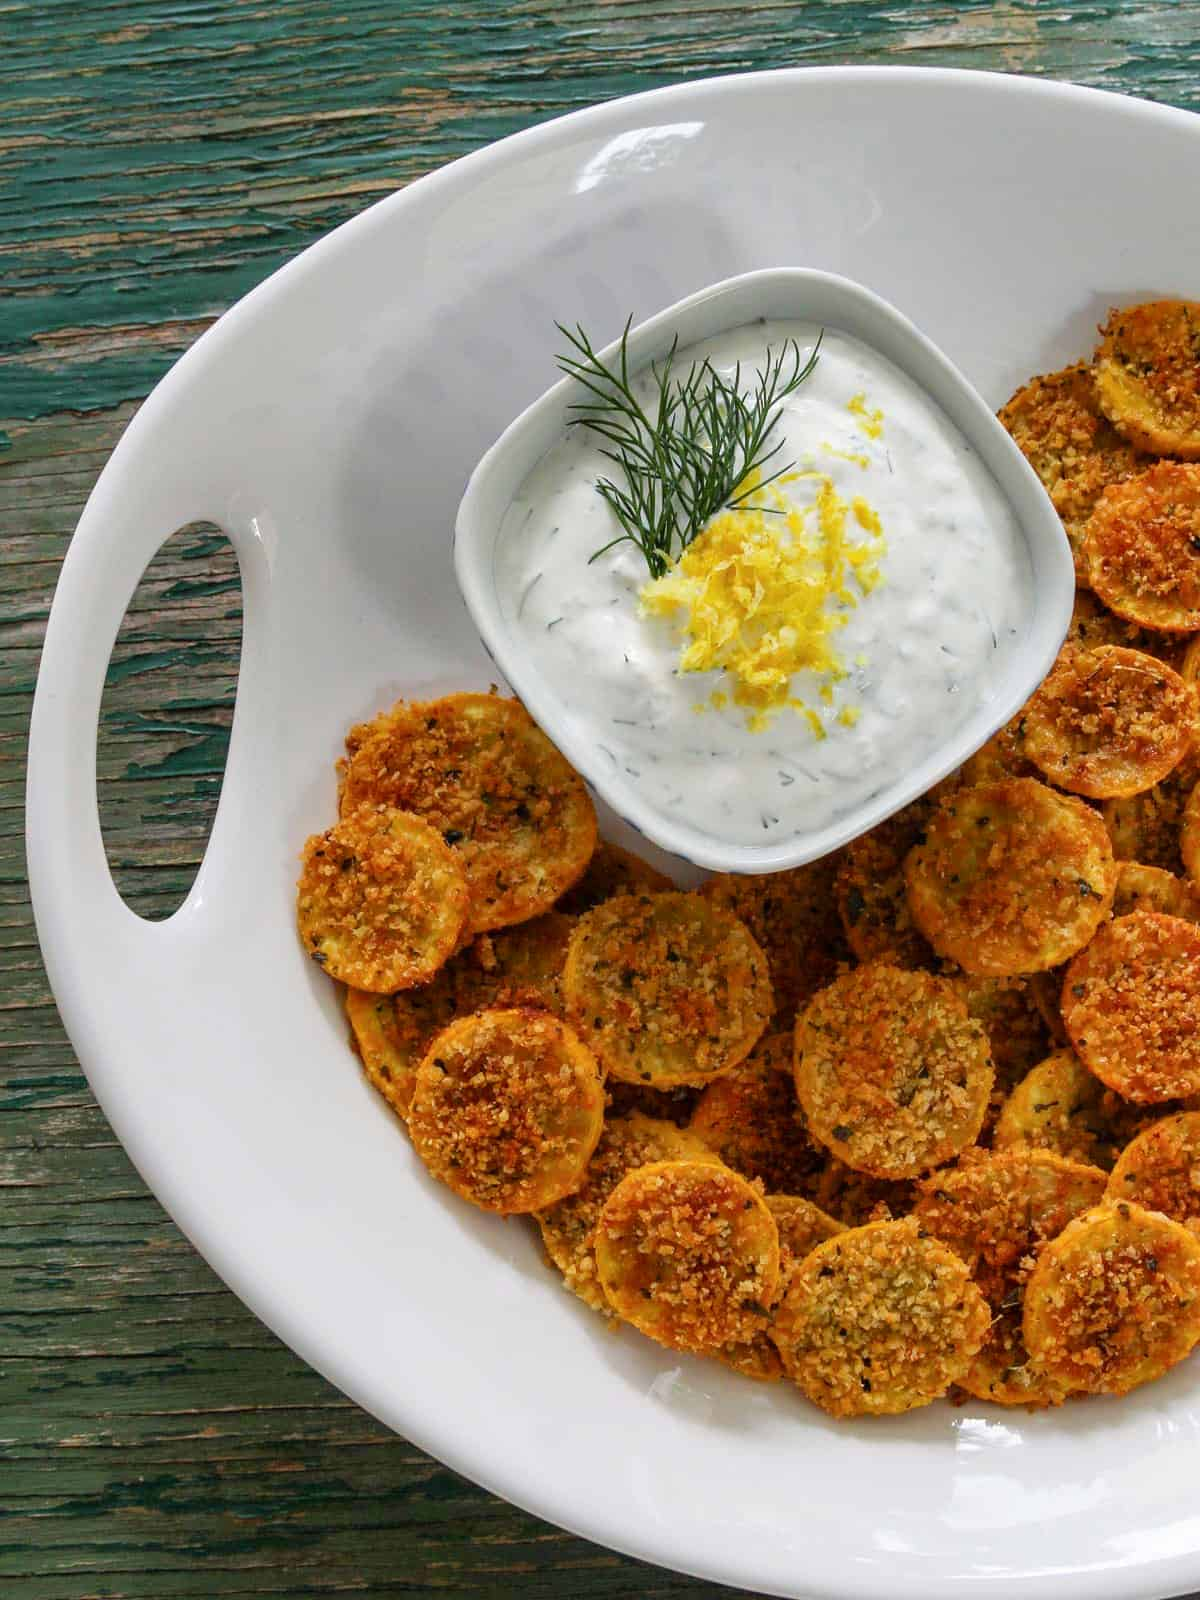 A large white platter with zucchini chips on it and a small bowl of yogurt dip garnished with lemon and dill.